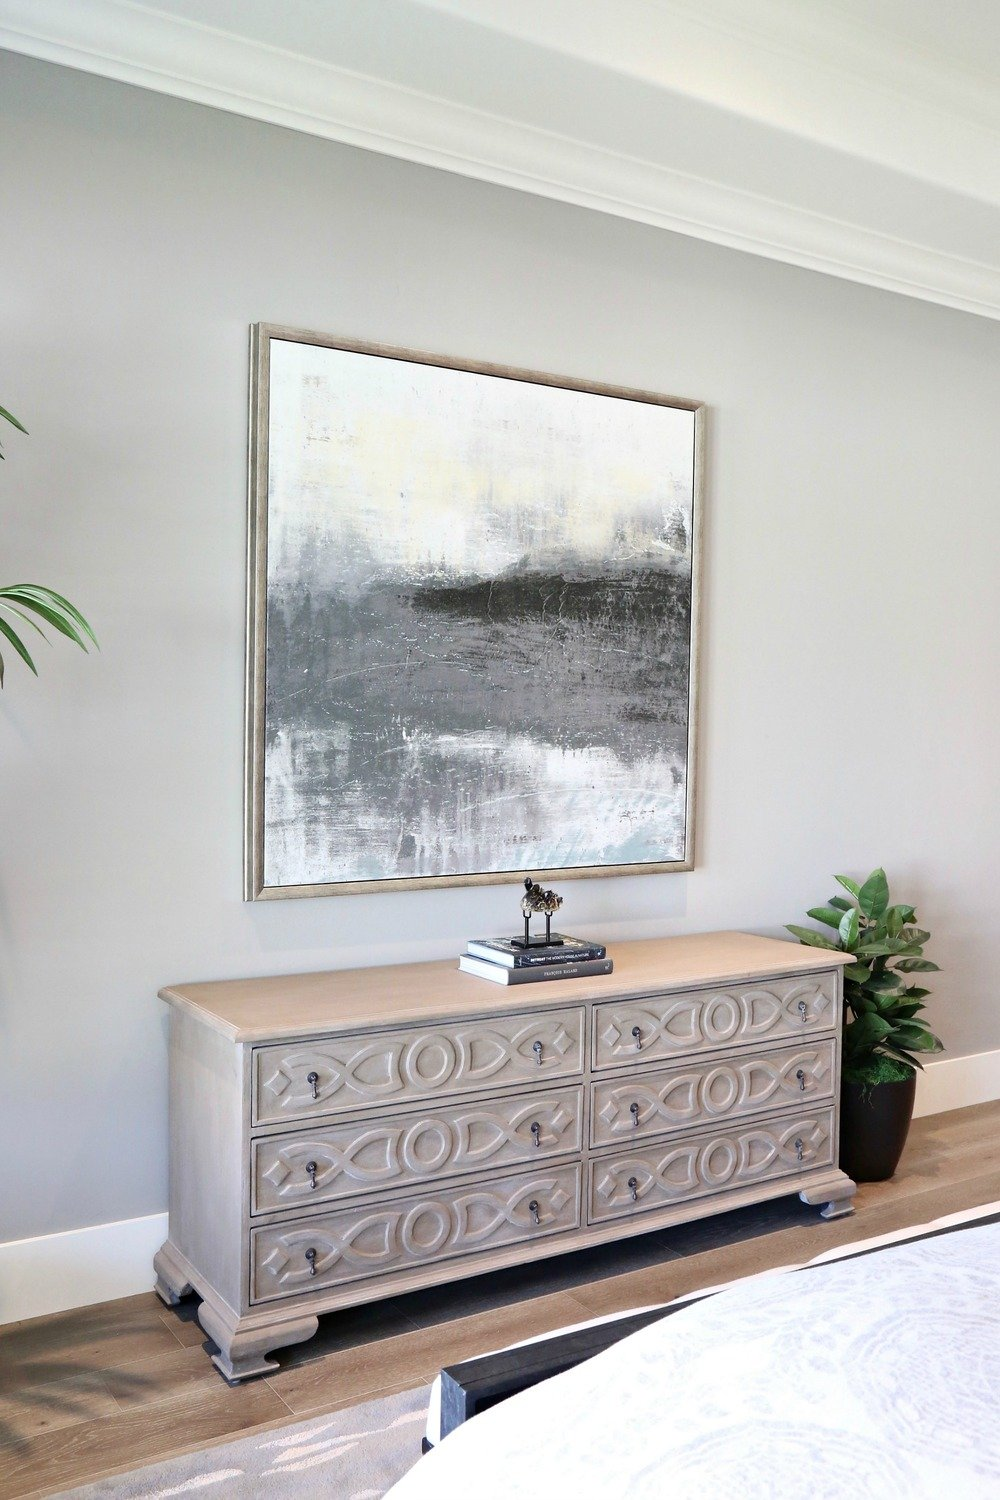 Paint Color Trends And Forecasts - 2018 interior paint colors